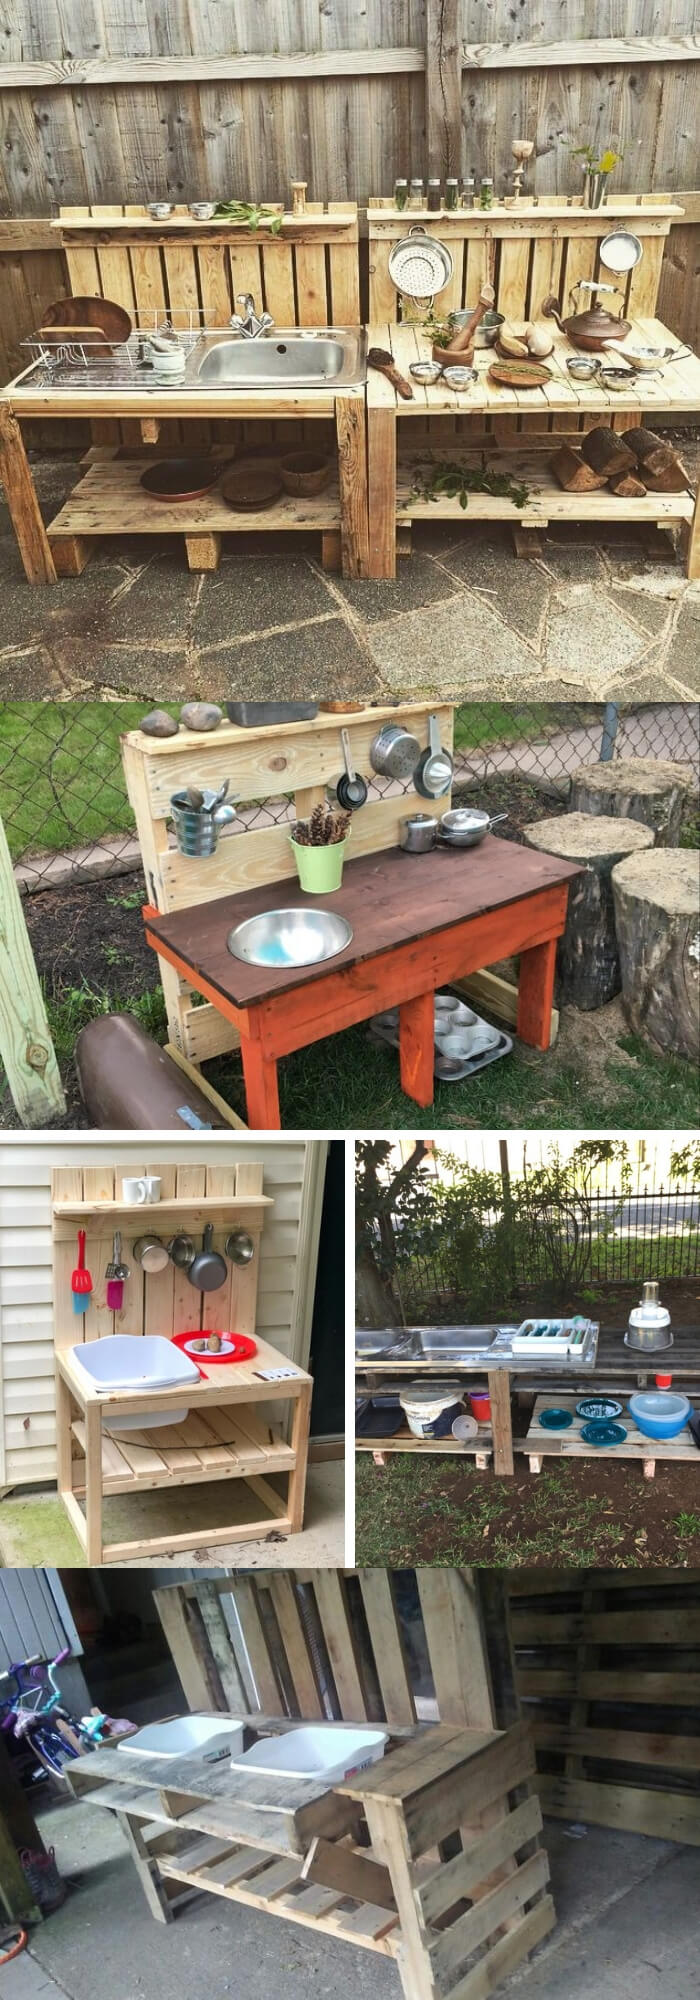 31 Stunning Outdoor Kitchen Ideas Designs With Pictures For 2019